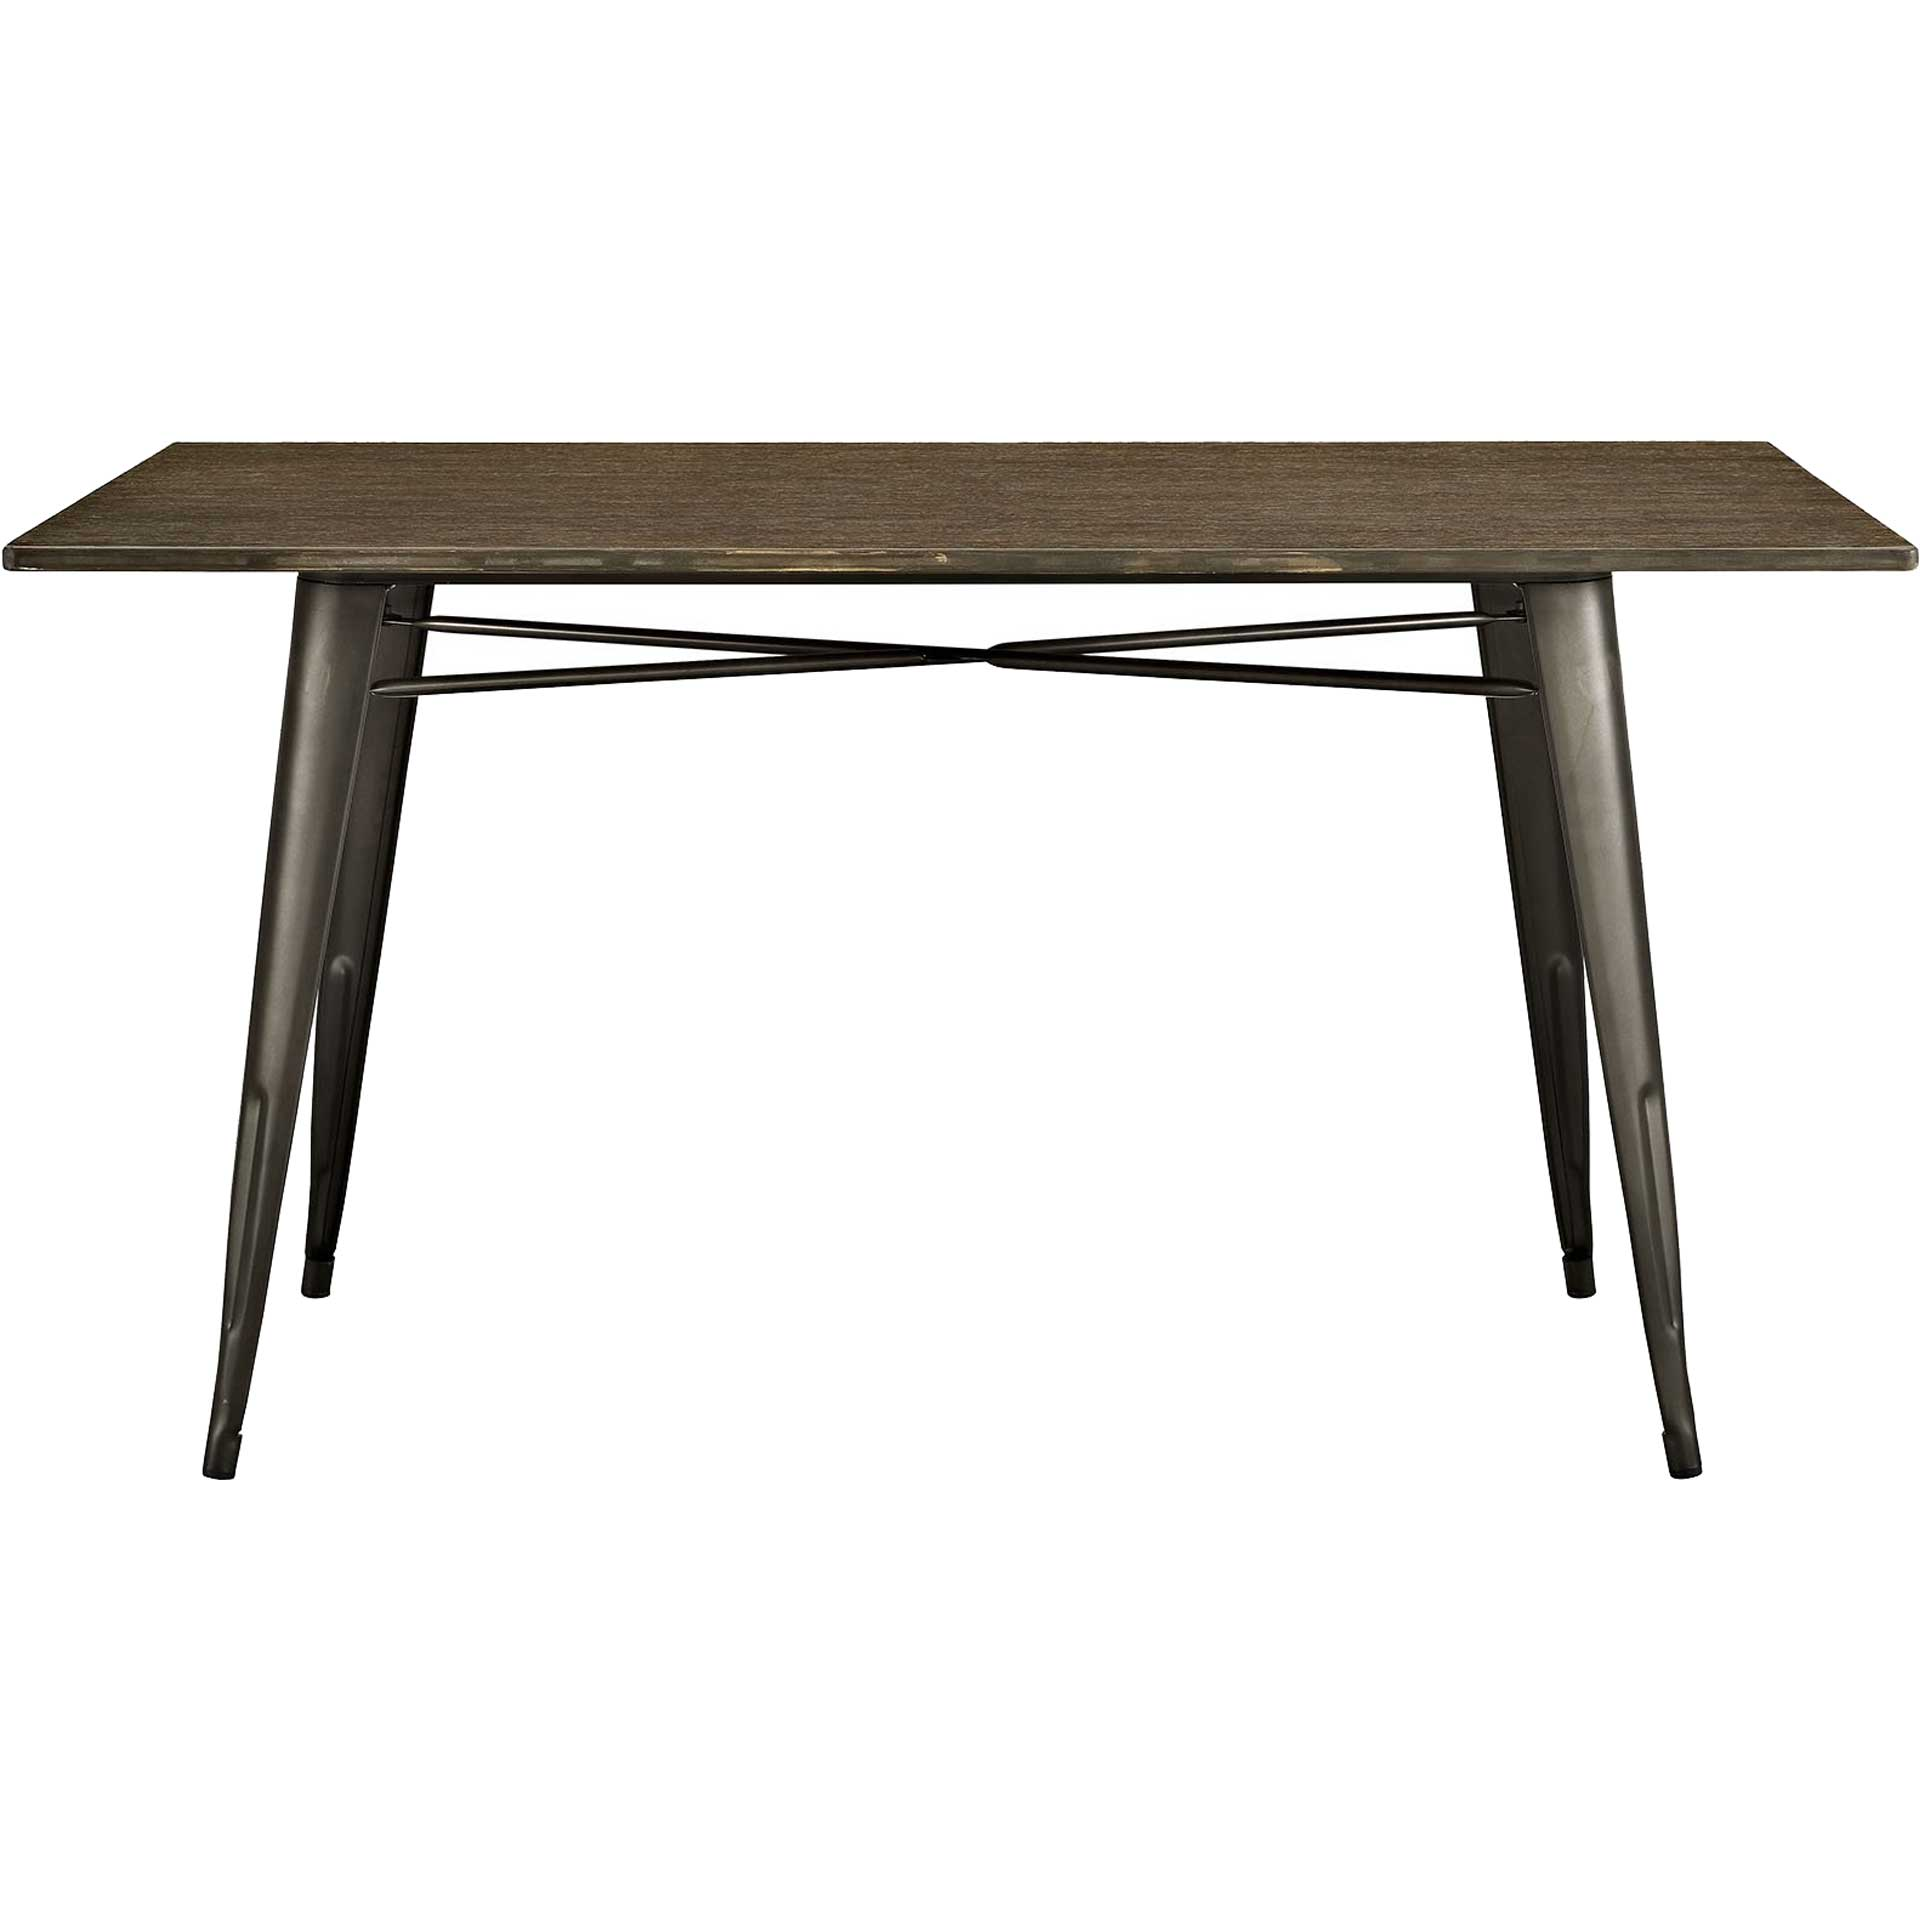 Anthropology Rectangle Wood Dining Table Brown